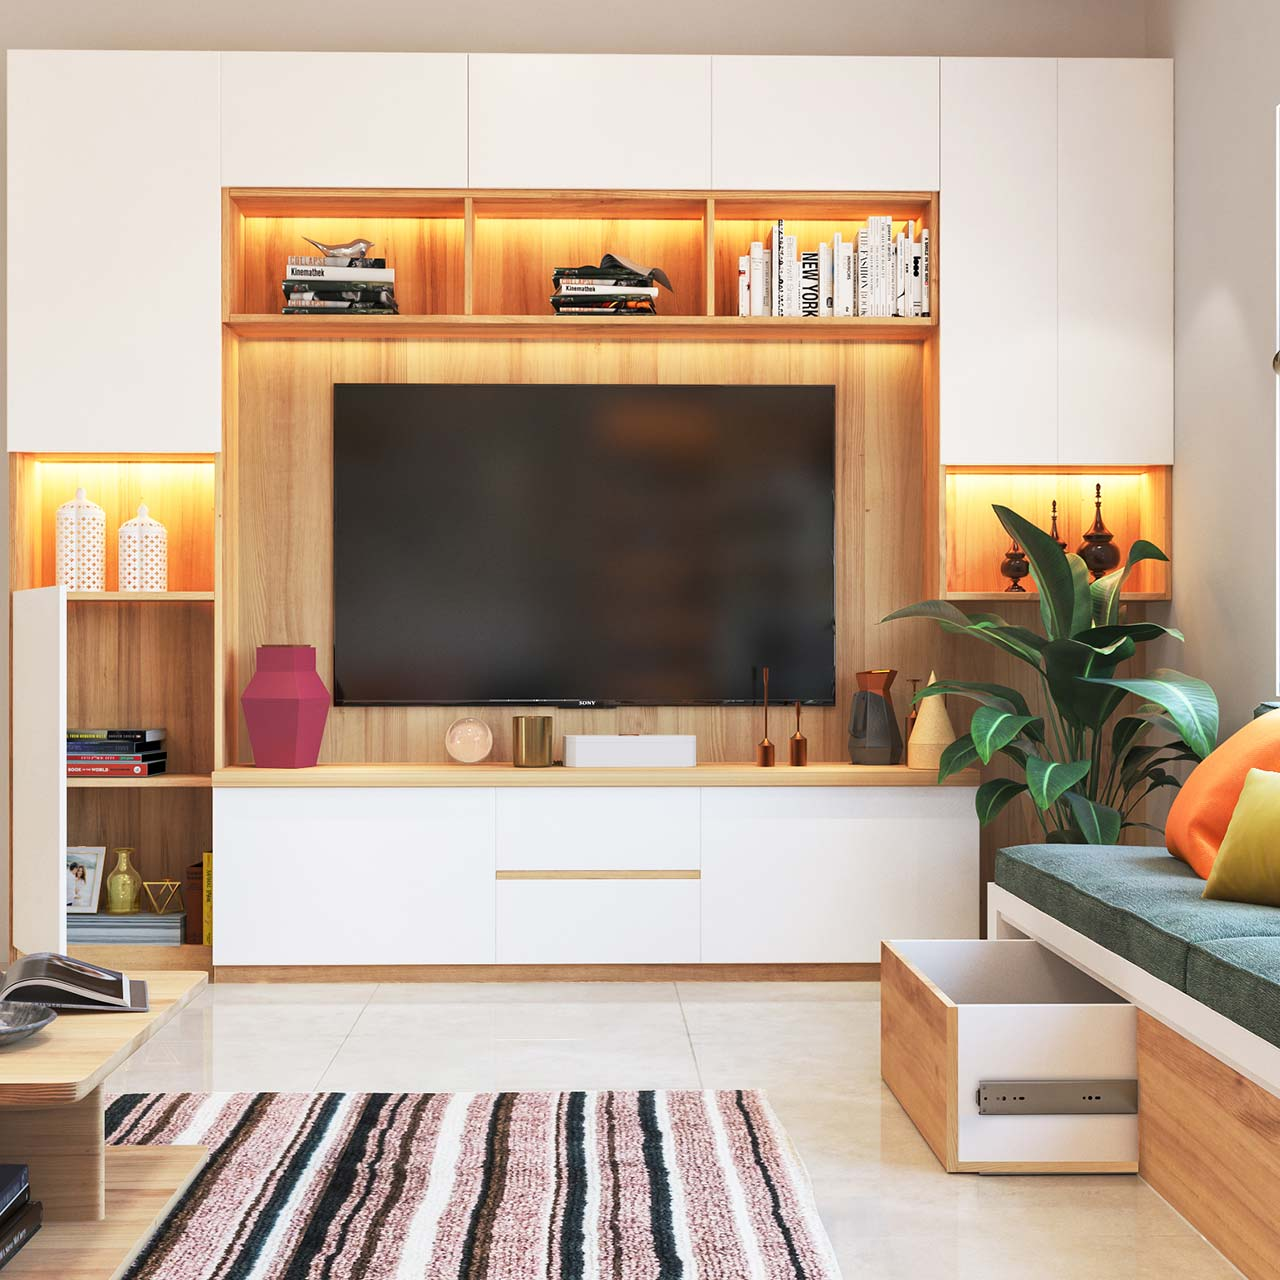 Home decor tips for your Drawing room according to Vastu Shastra